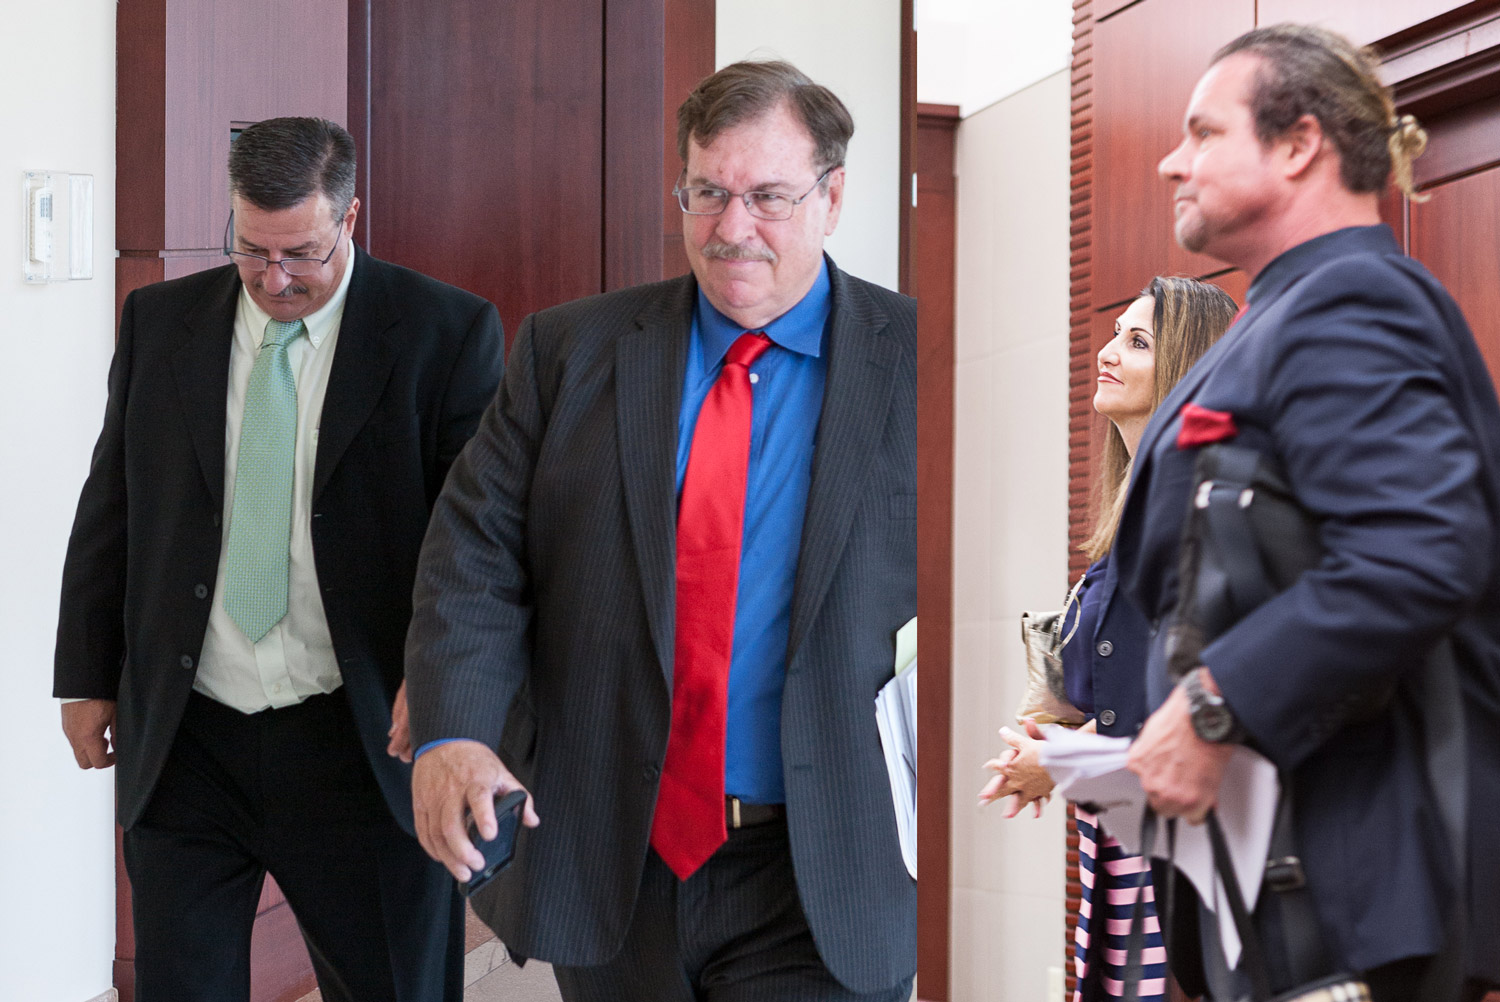 The parties arriving at this morning's hearing before Circuit Judge R. Lee Smith at the Flagler County Courthouse. From left, David O'Brien and his attorney, Stephen Alexander, Palm Coast Mayor Milissa Holland, and her attorney, Doug Kneller. (© Jon Hardison for FlaglerLive)